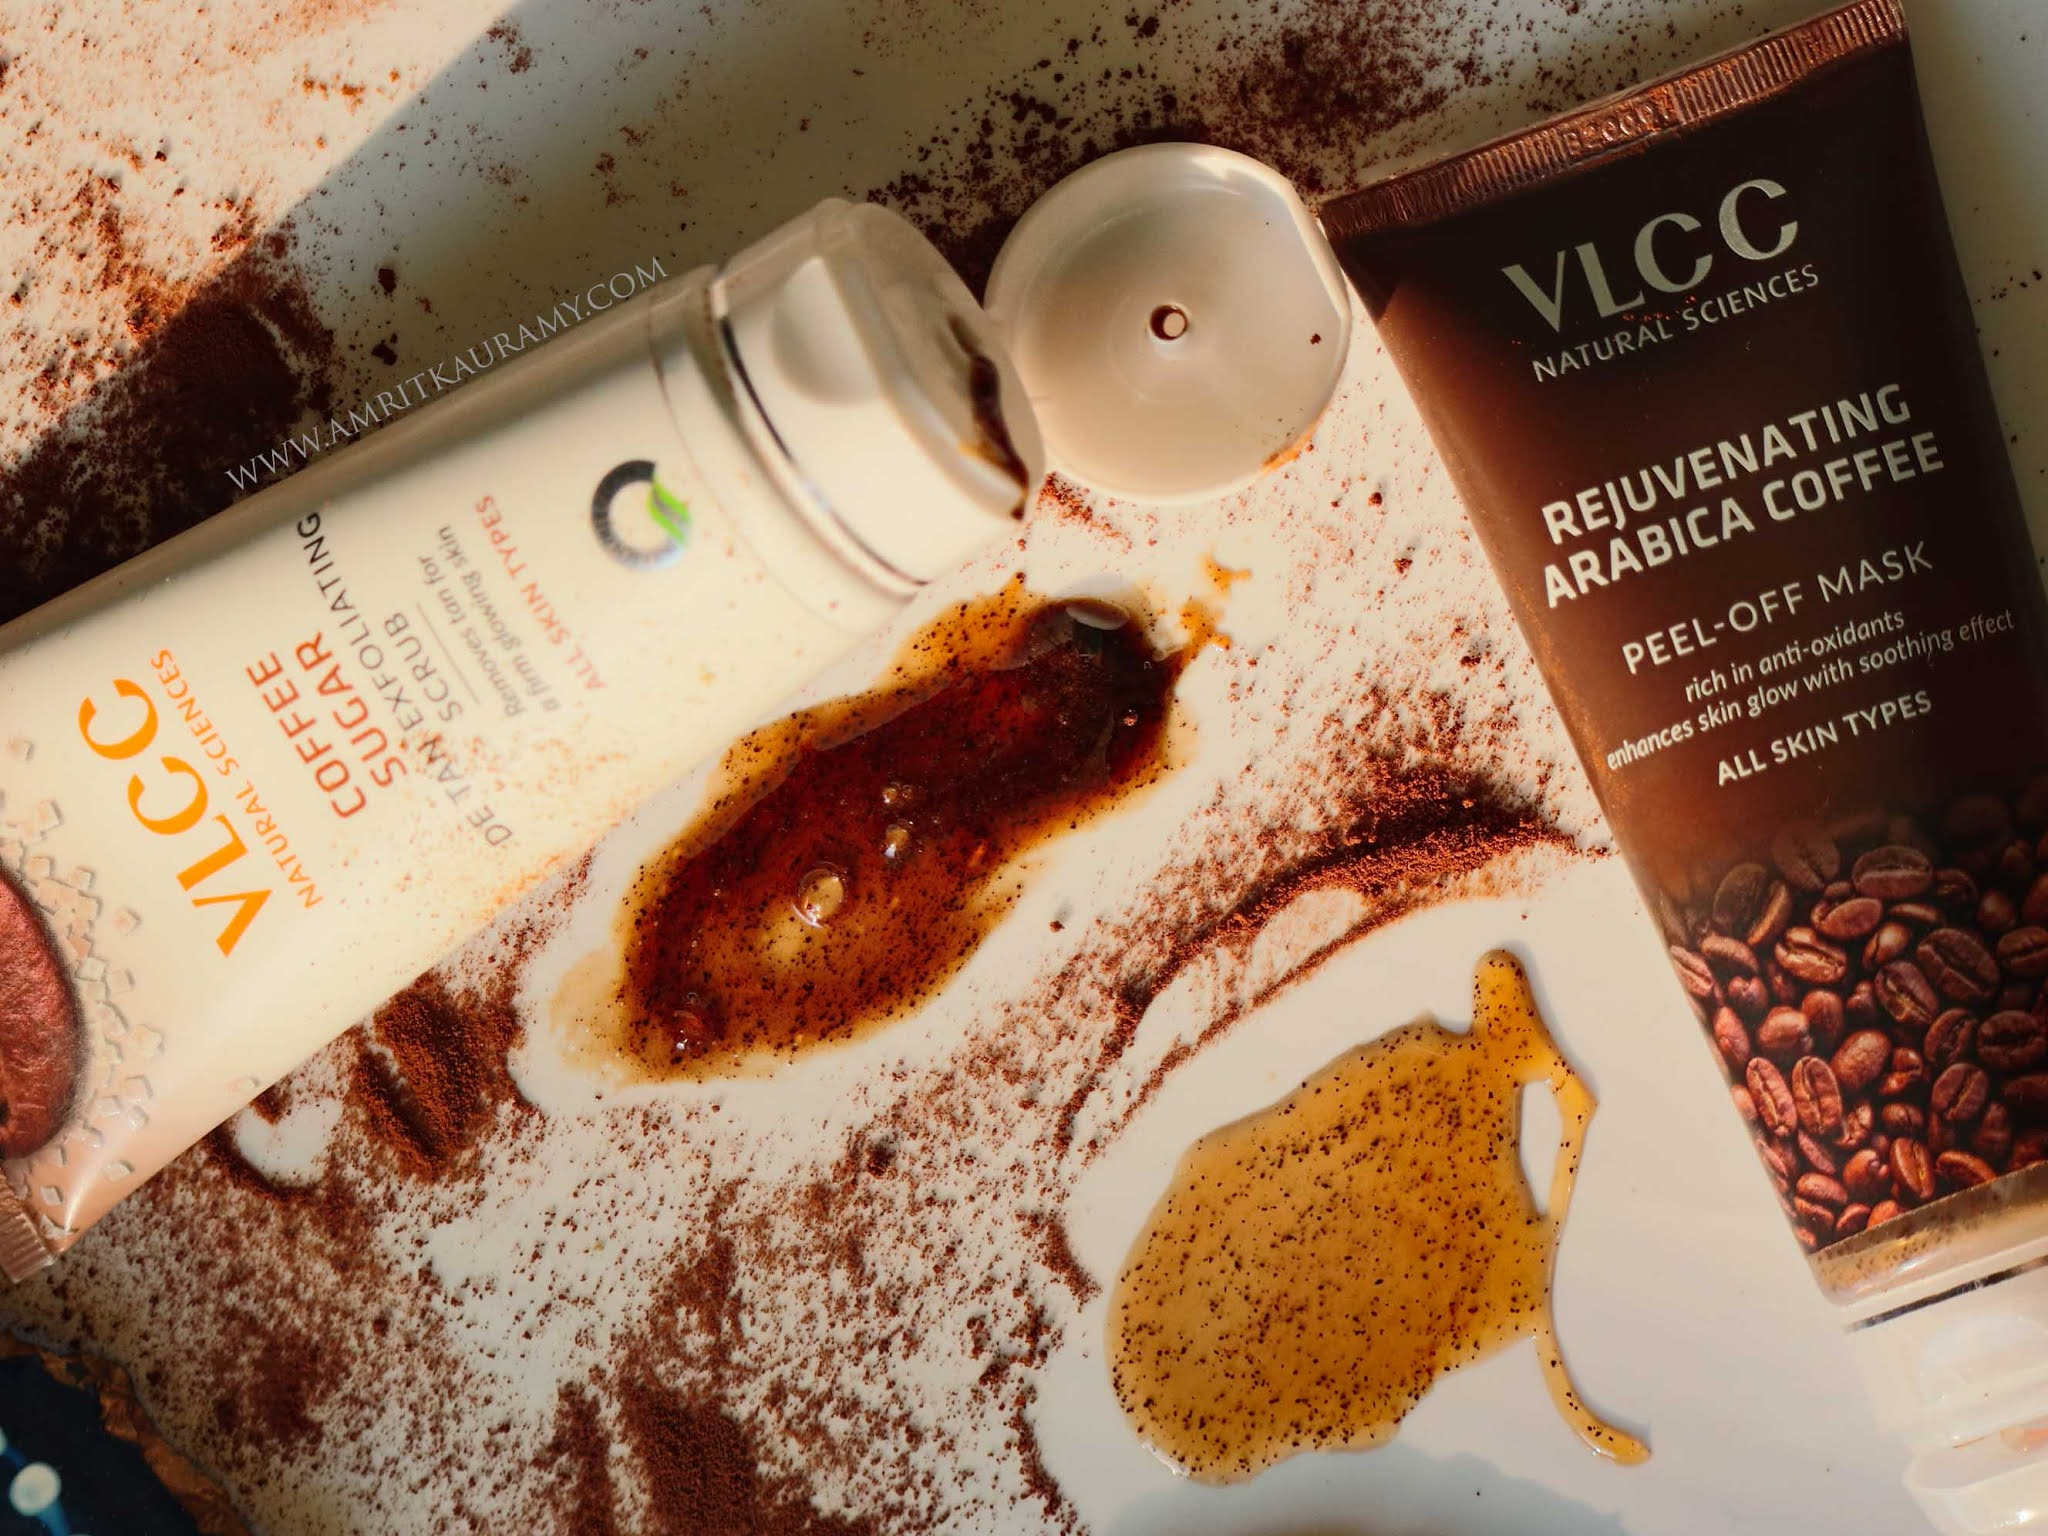 VLCC Coffee Sugar Scrub and Arabica Coffee Peel-off Mask